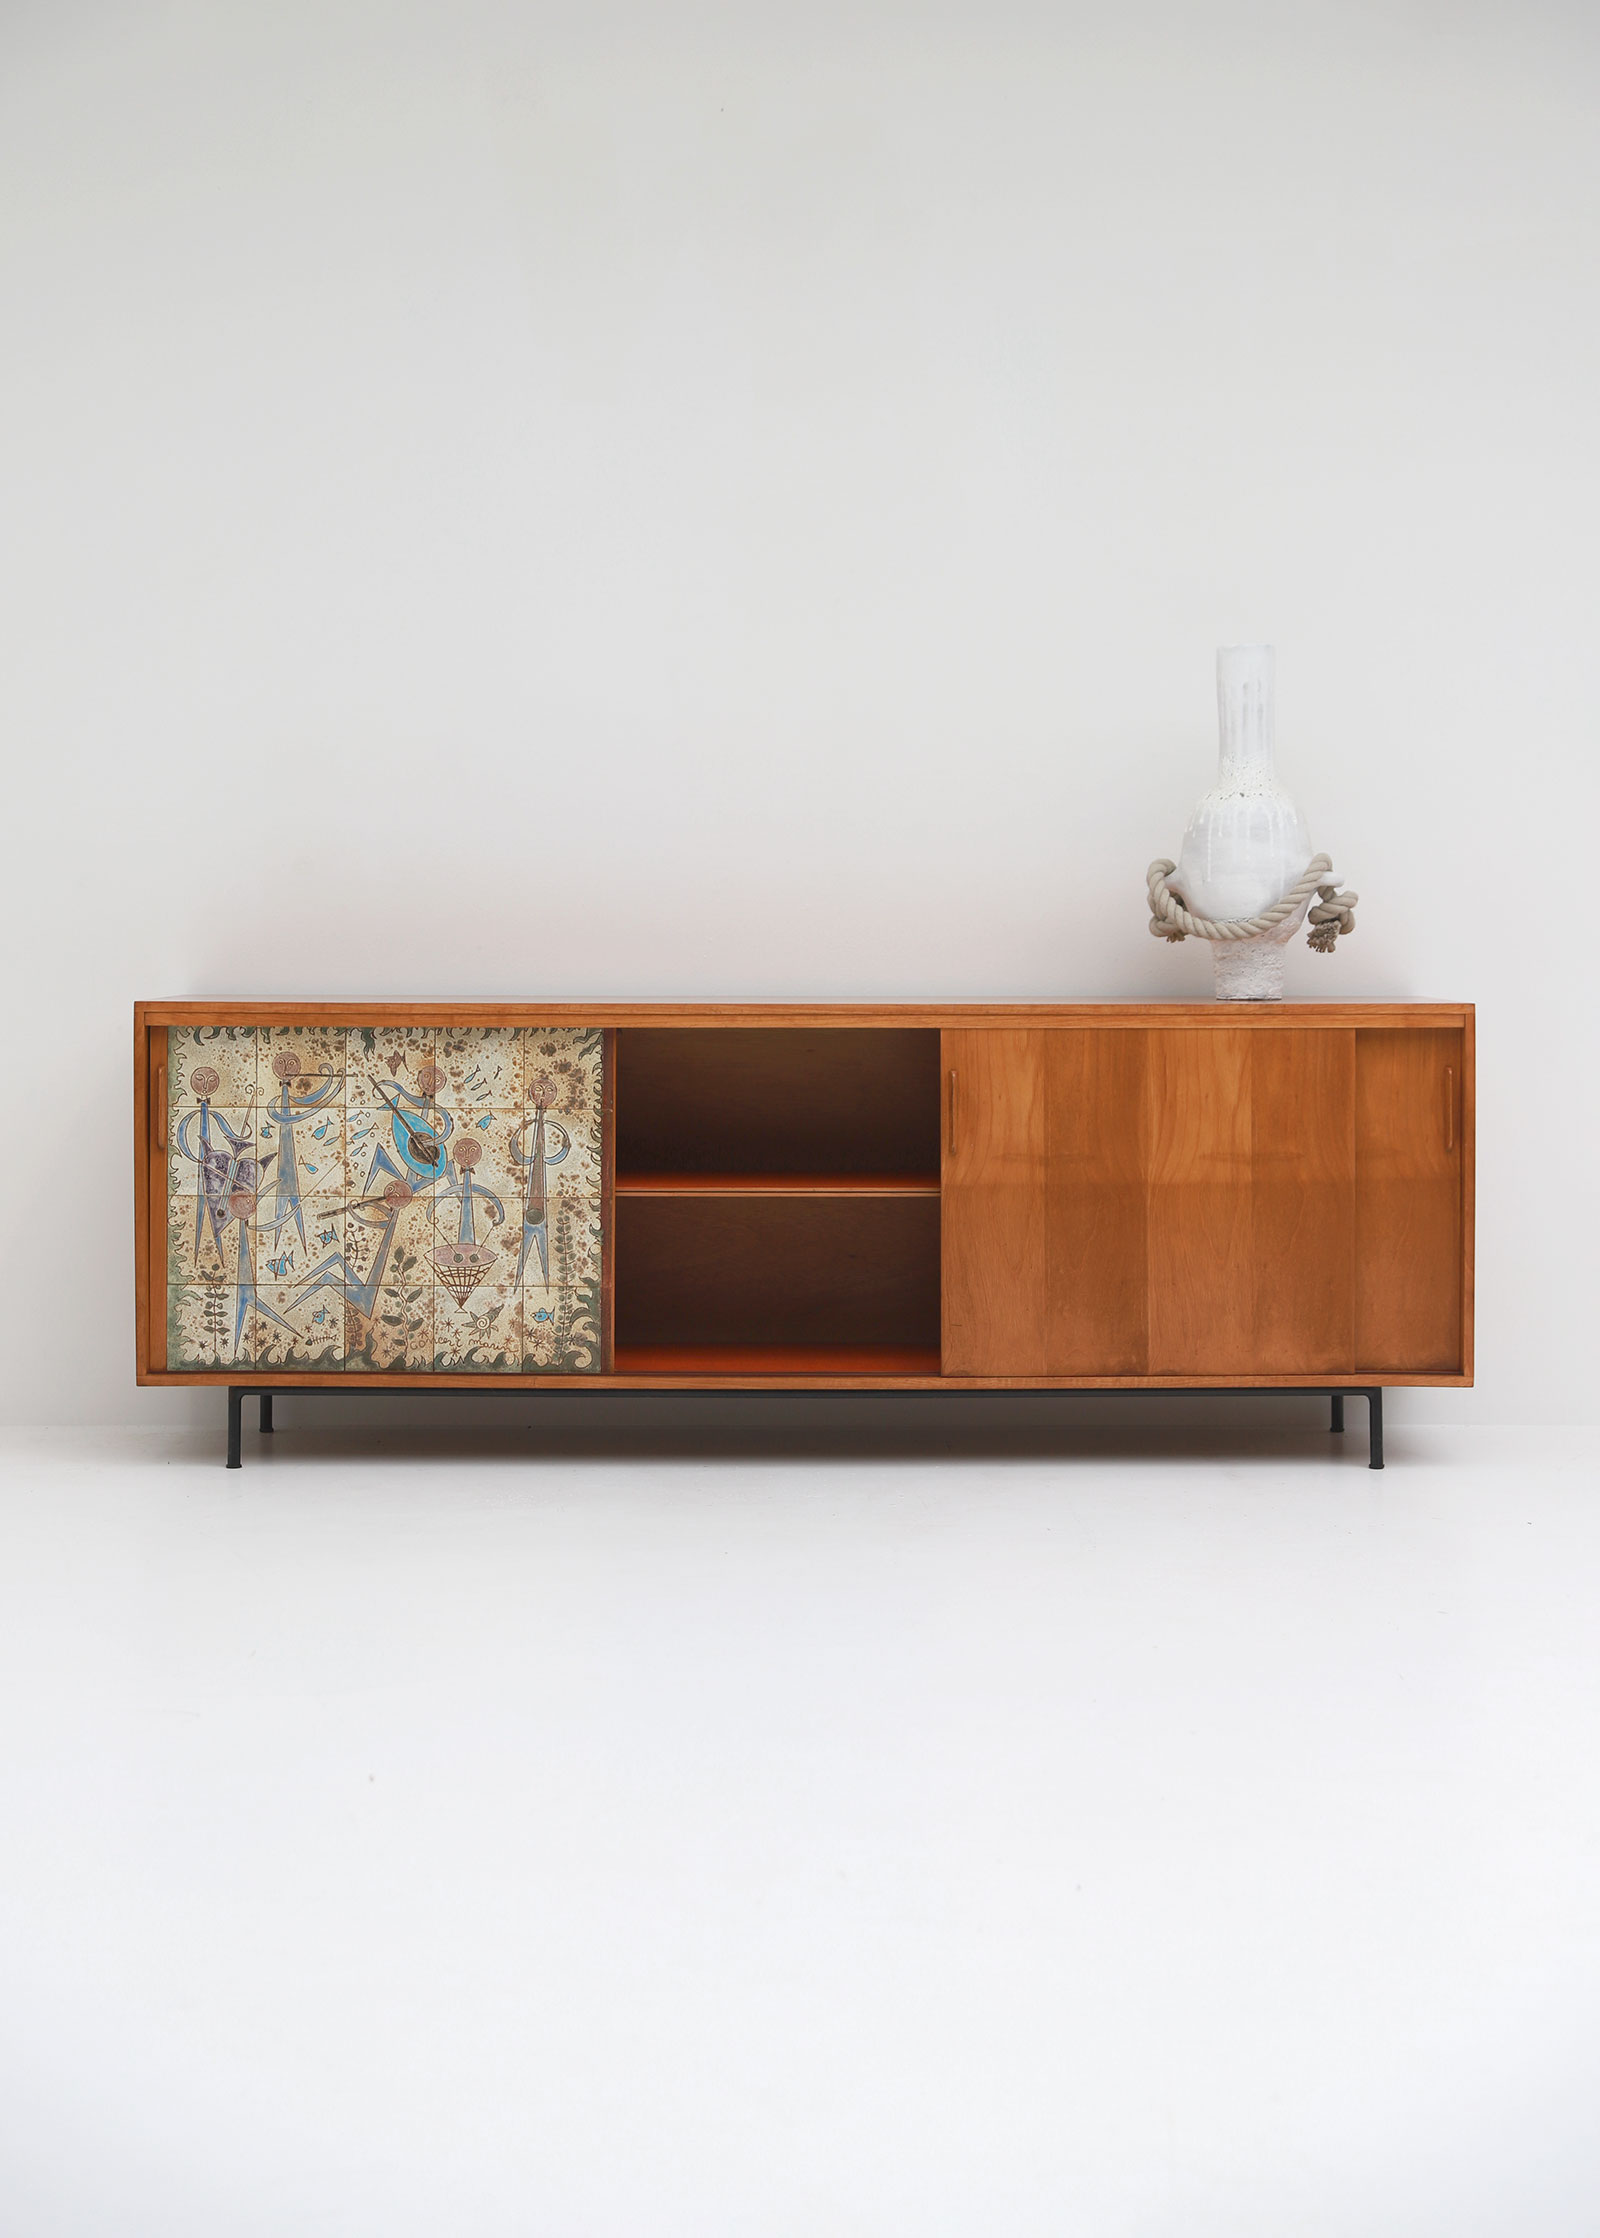 Sideboard with Ceramic Tiles Charles-Emile Pinson 1958image 11